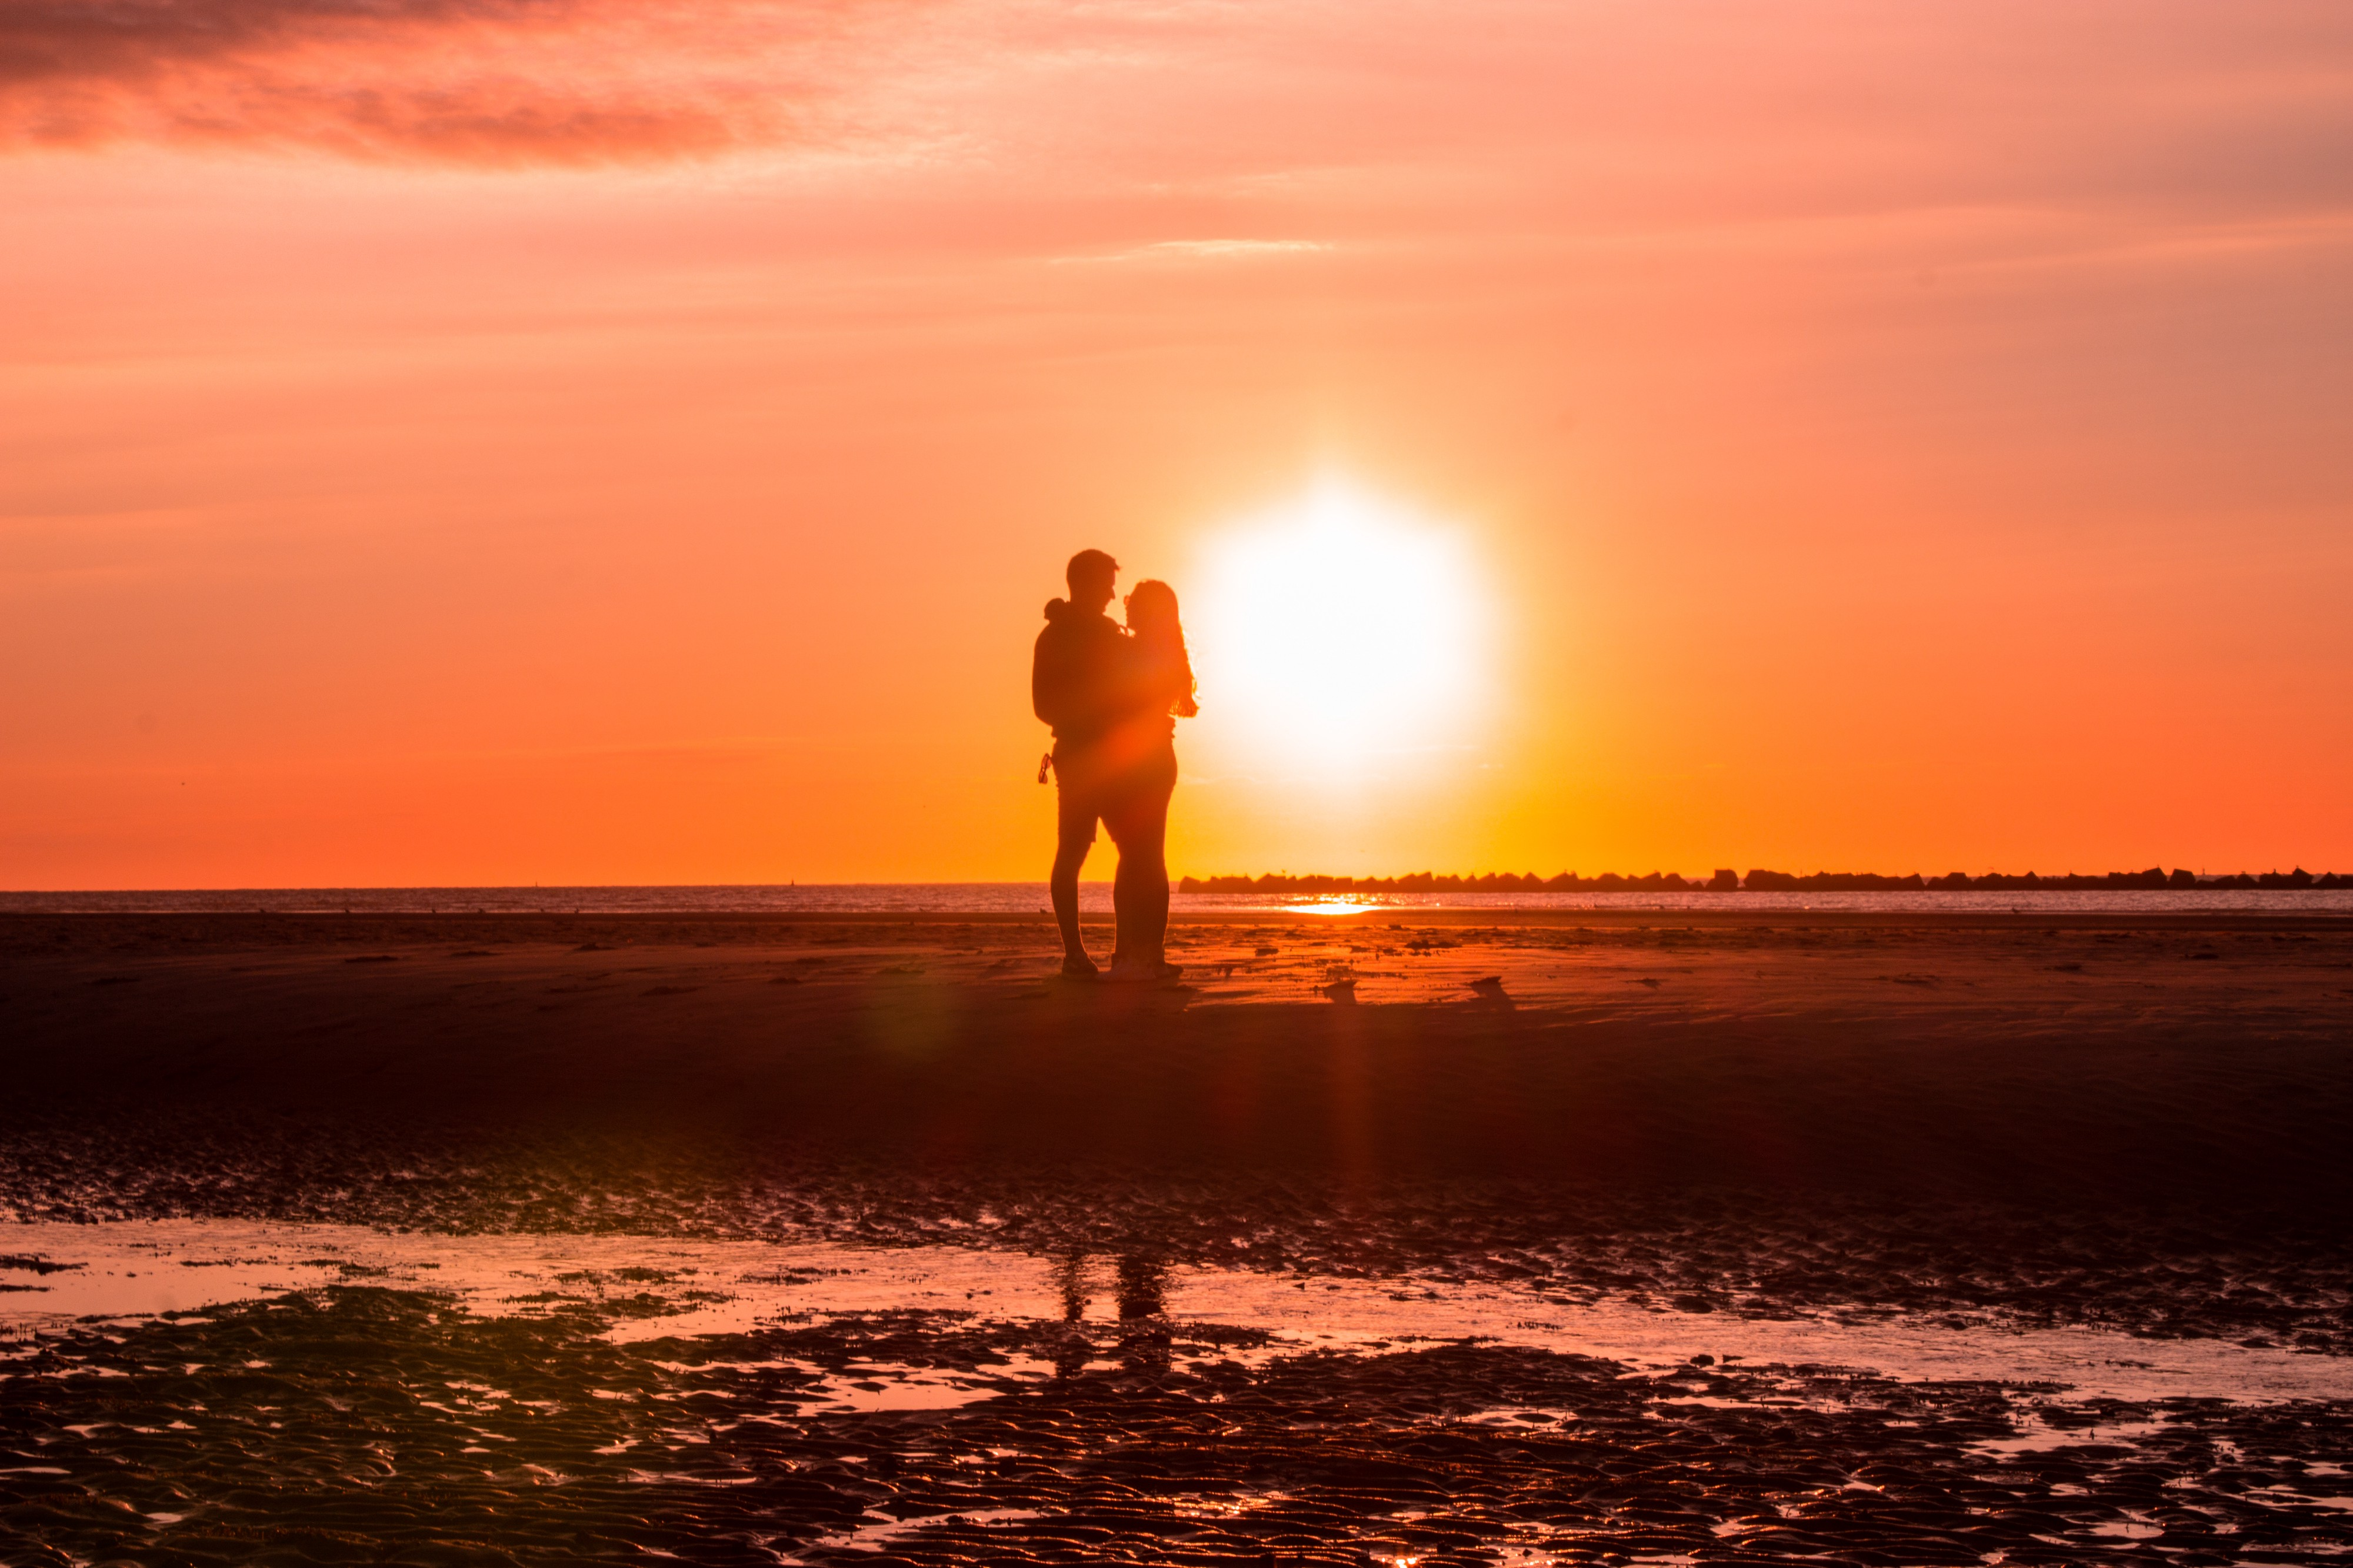 Lovers embracing on the shore as the sun sets and the waves hug their legs.